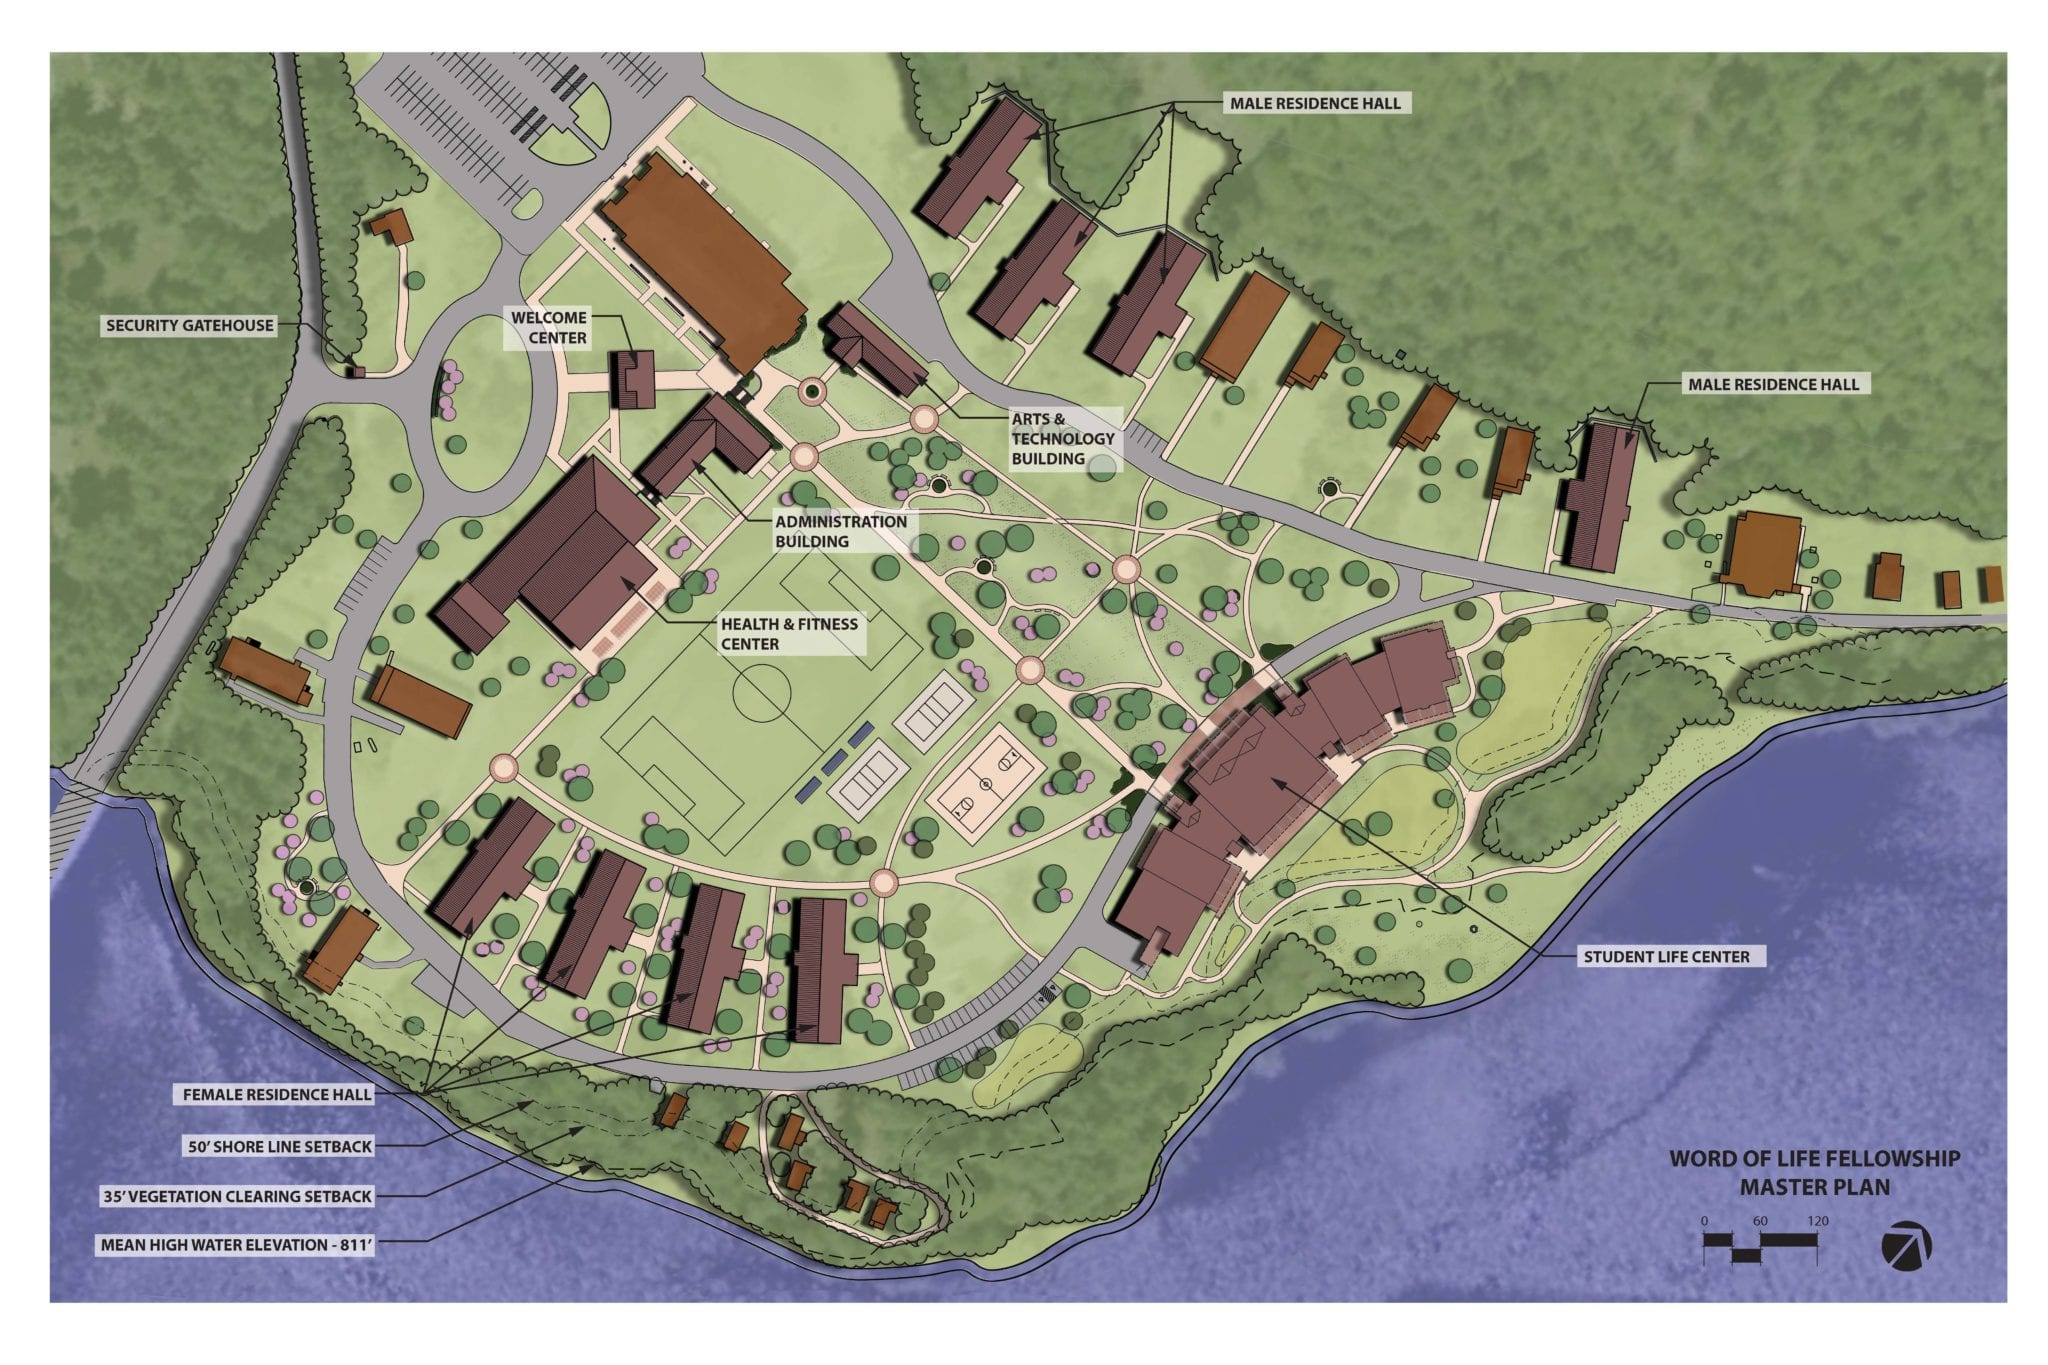 2011100_MASTER PLAN_LAYOUT 2 5 2015